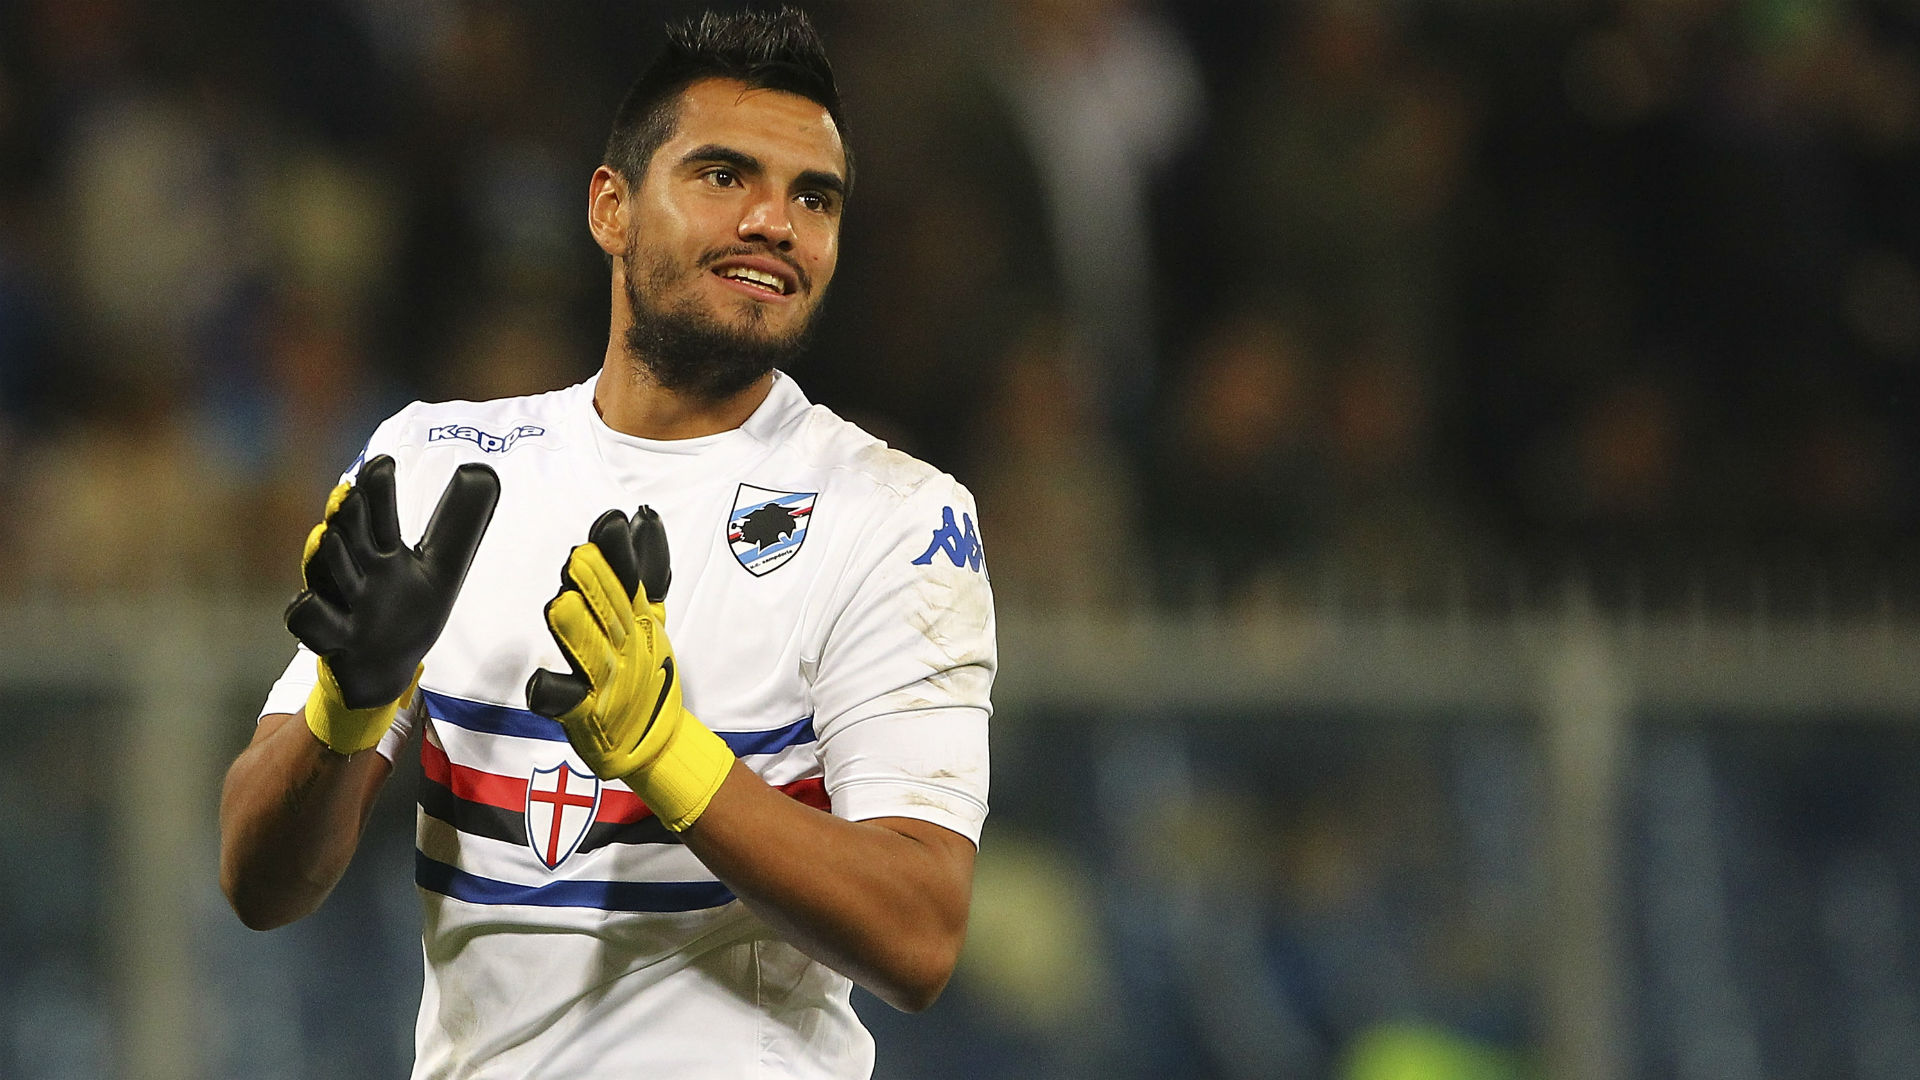 Officiel : Romero rejoint Man Utd !